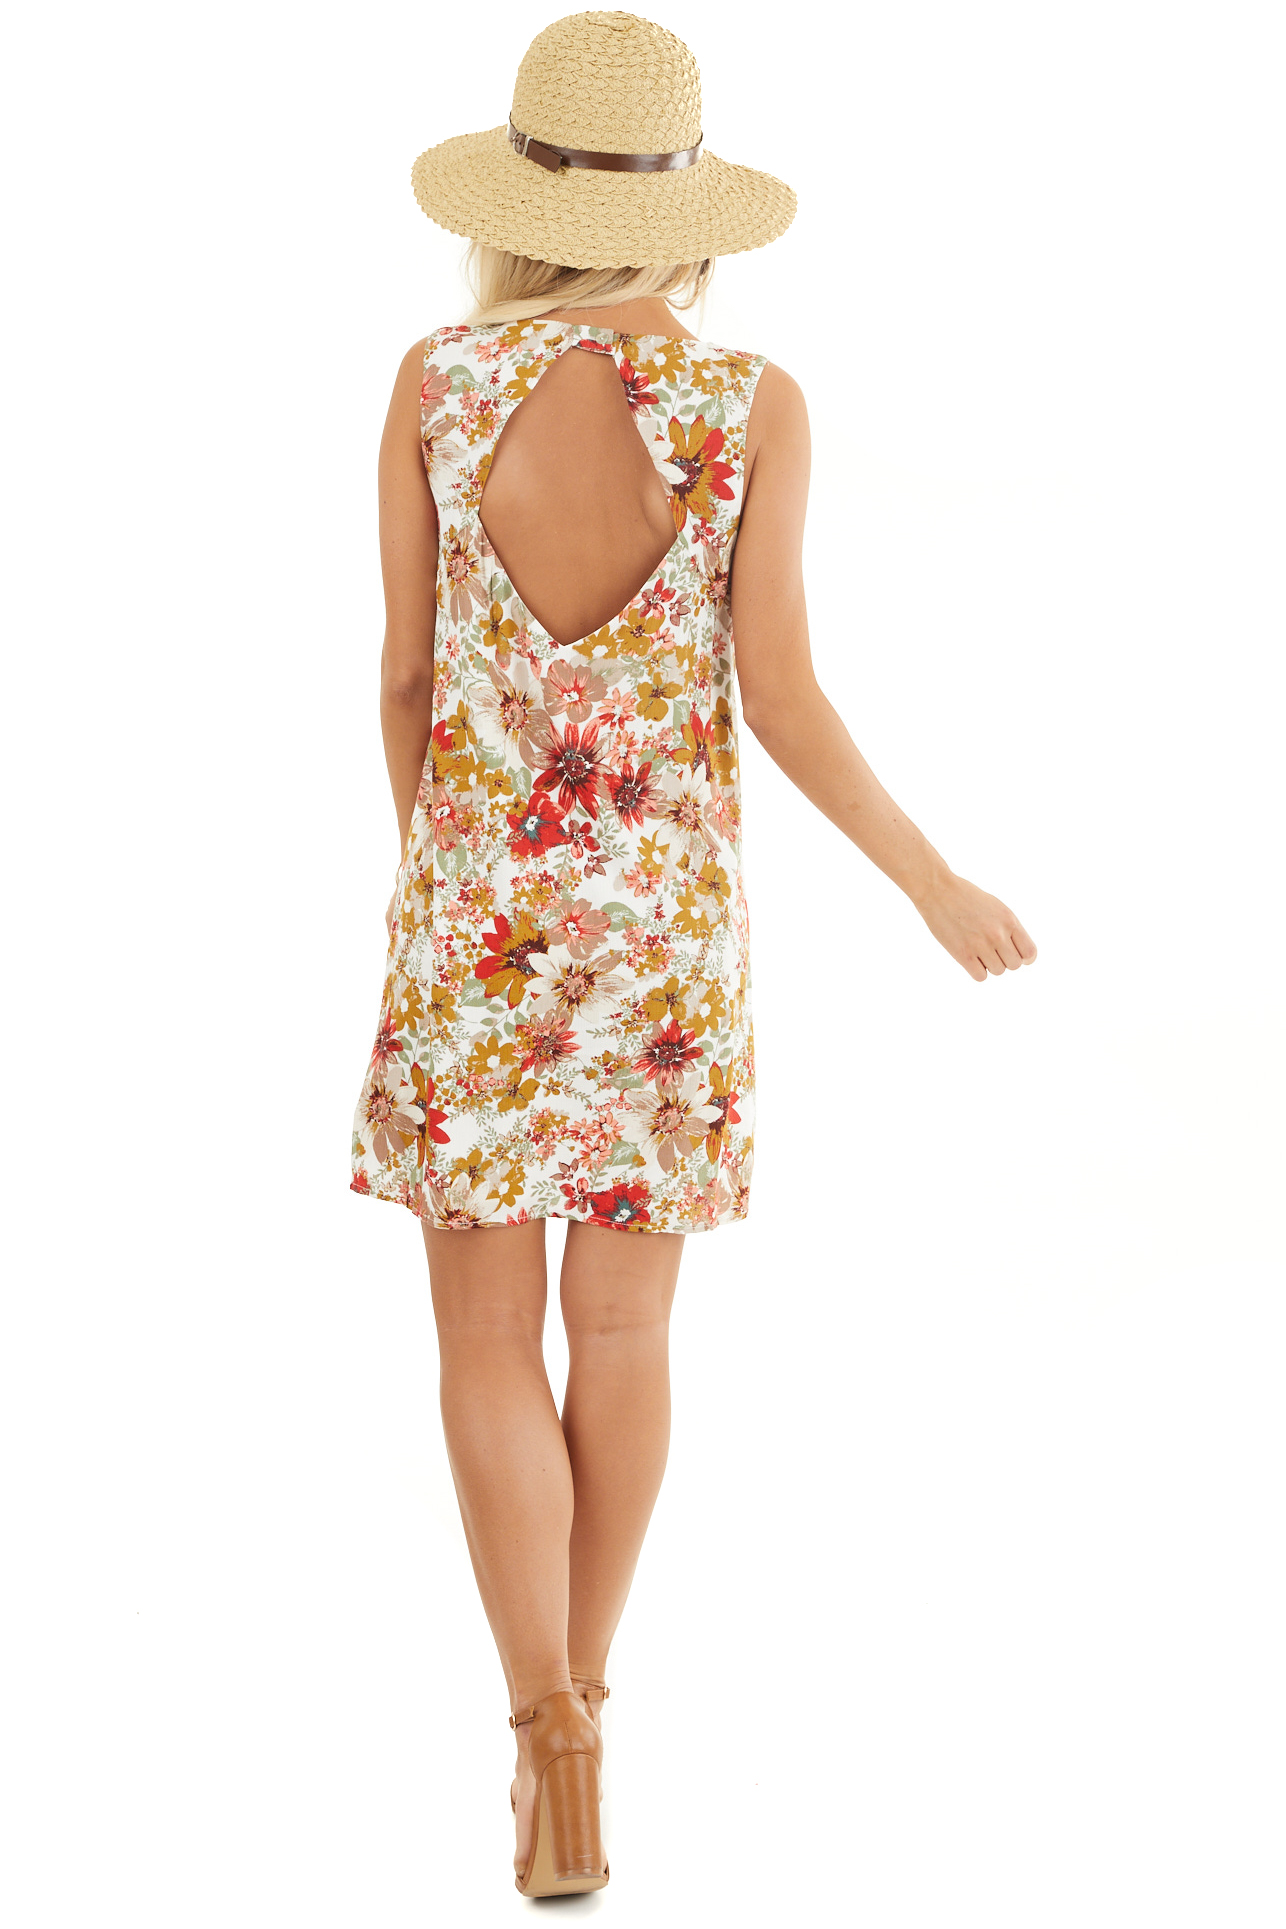 Pearl White Floral Print Shift Mini Dress with Cutout Back back full body